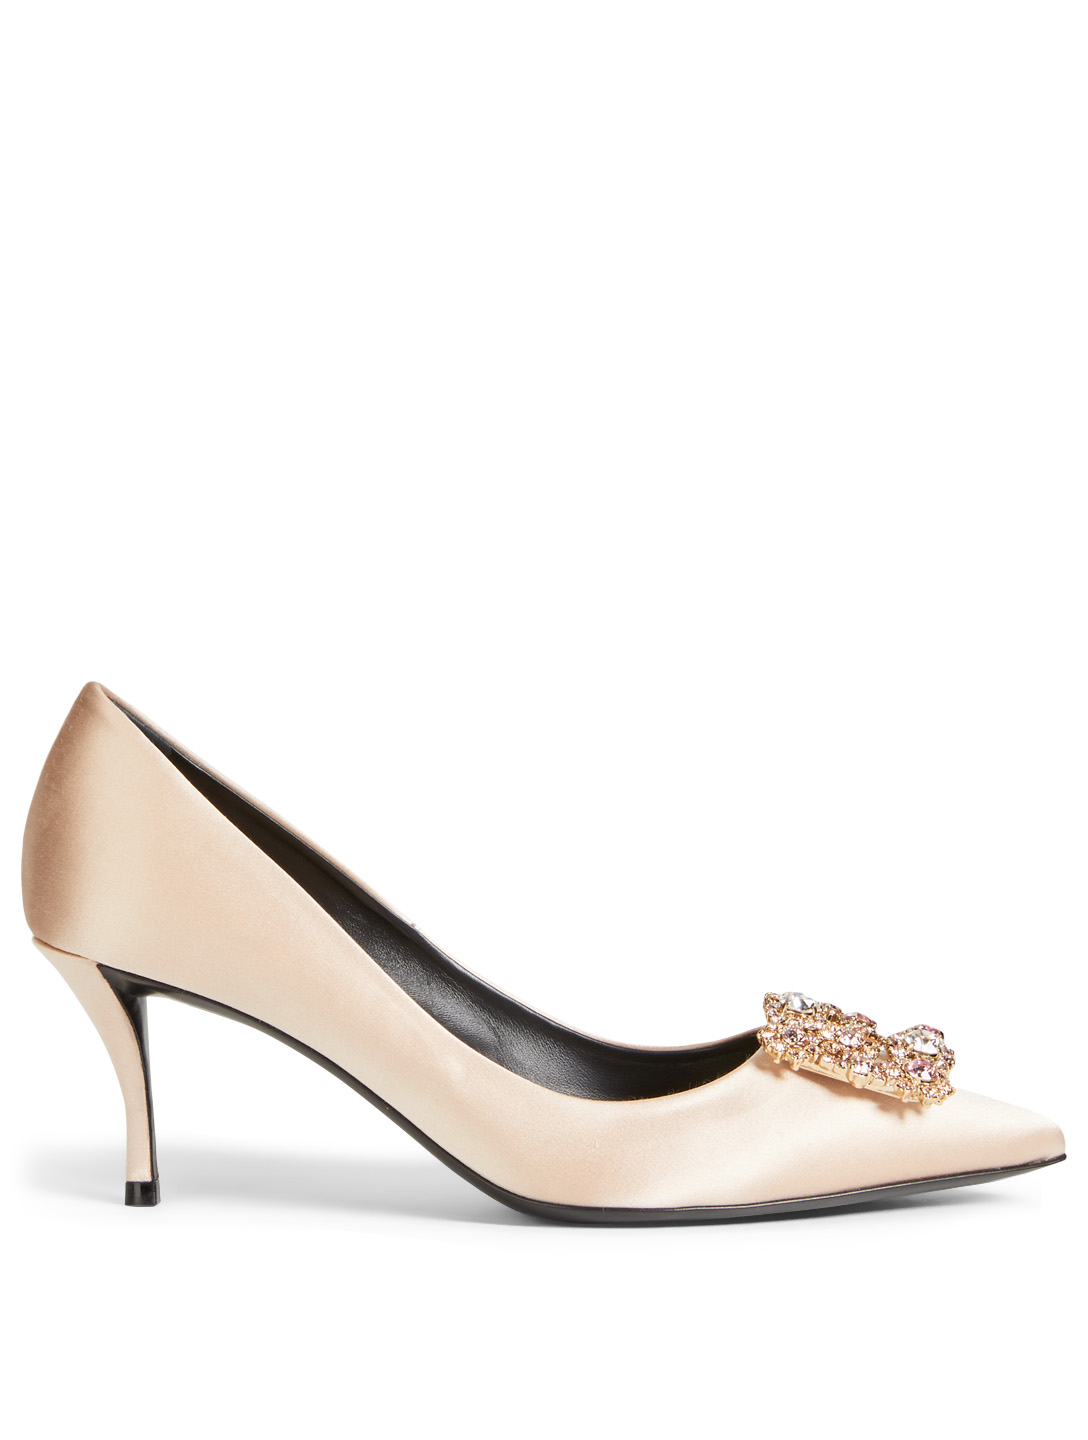 0f90d73372 ROGER VIVIER Flower Strass Silk Satin Pumps Designers Neutral ...